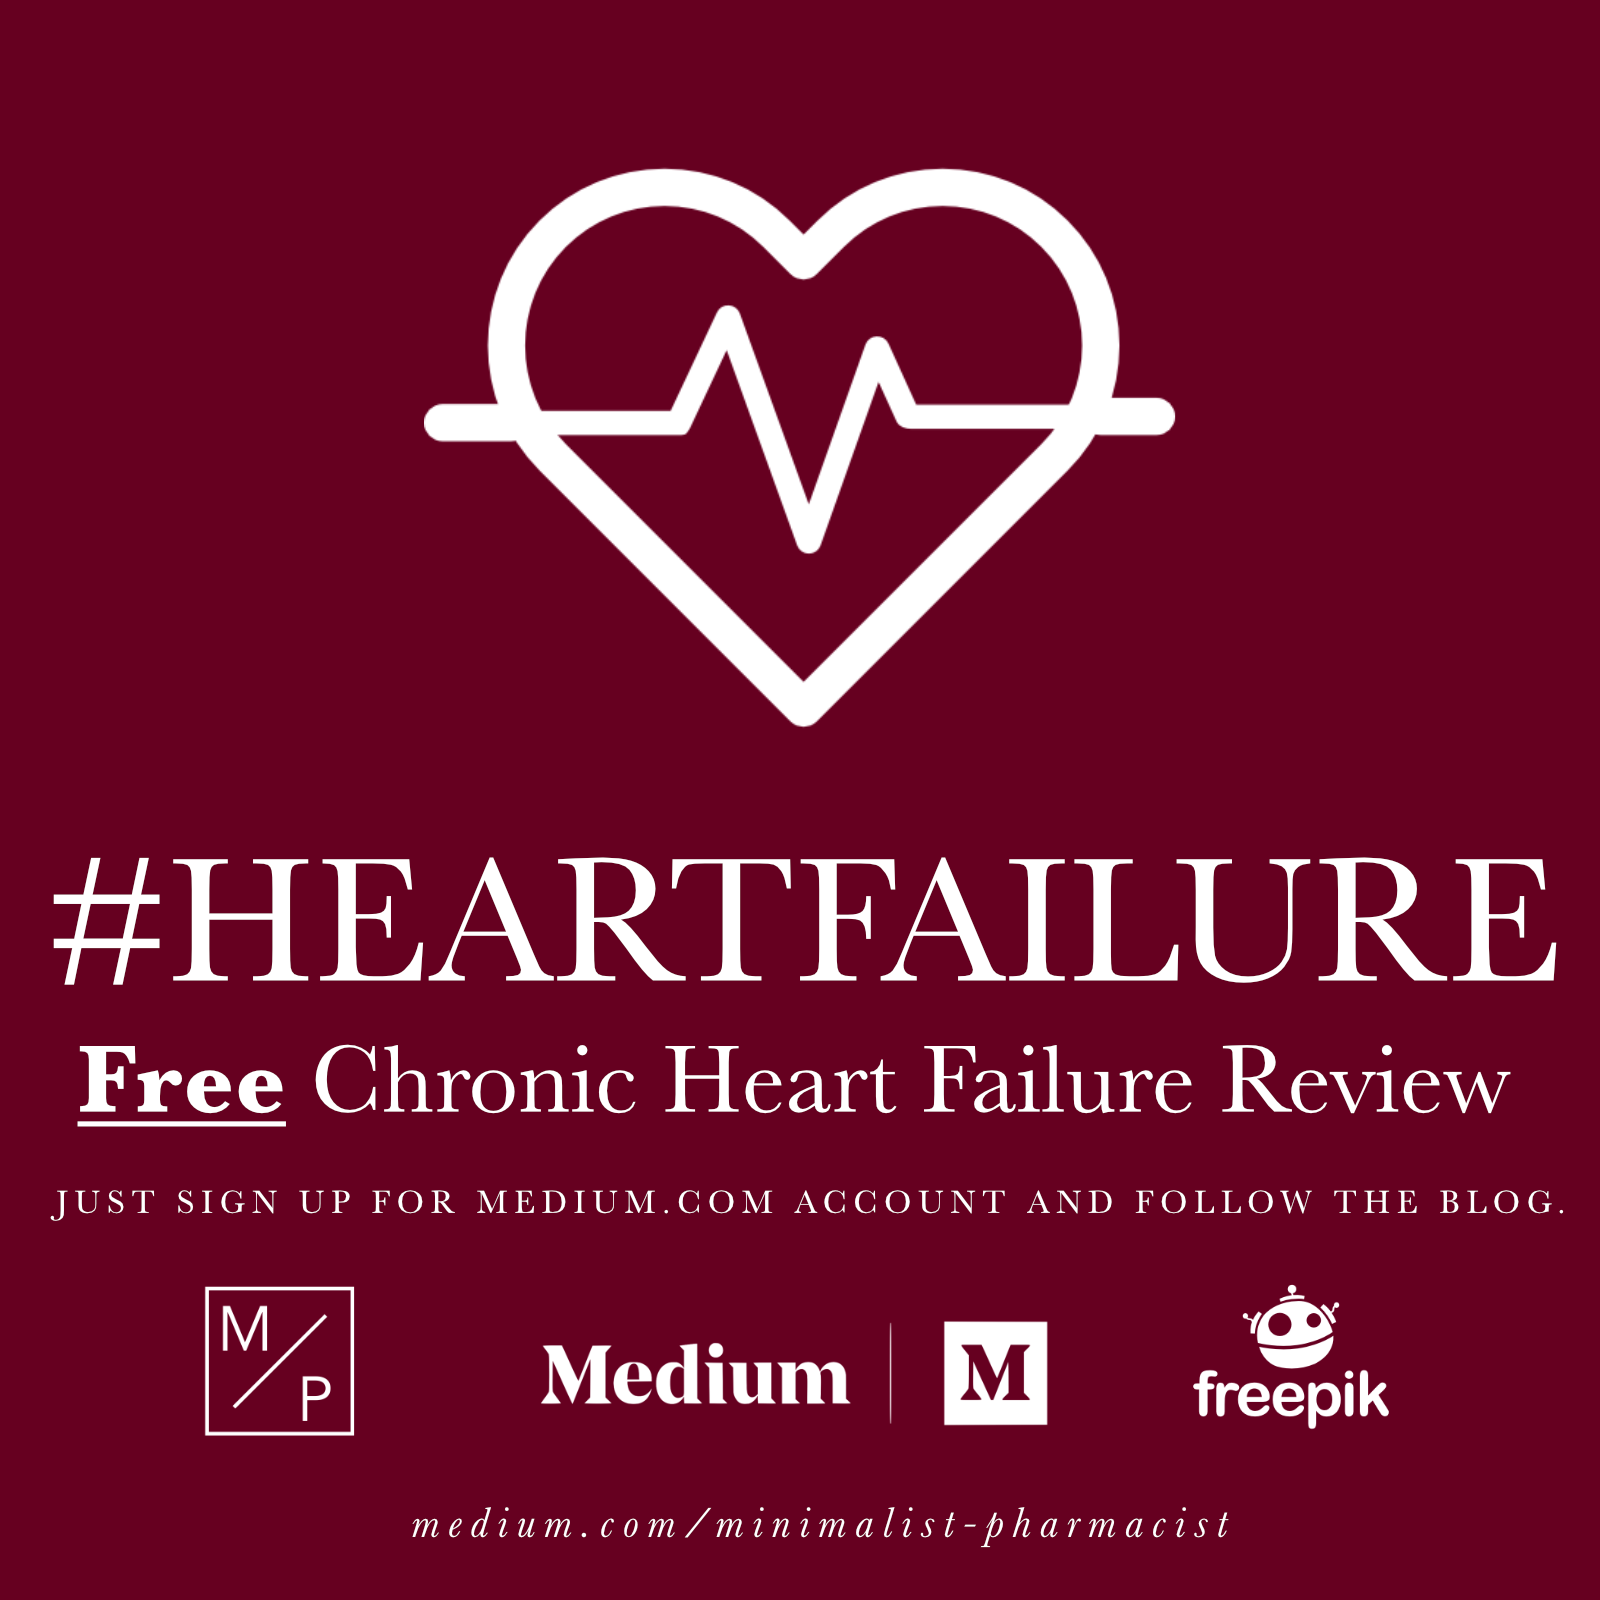 Guideline Based Pharmacotherapy Review For Treating Chronic Heart Failure By Minimalist Pharmacist Admin Minimalist Pharmacist Medium